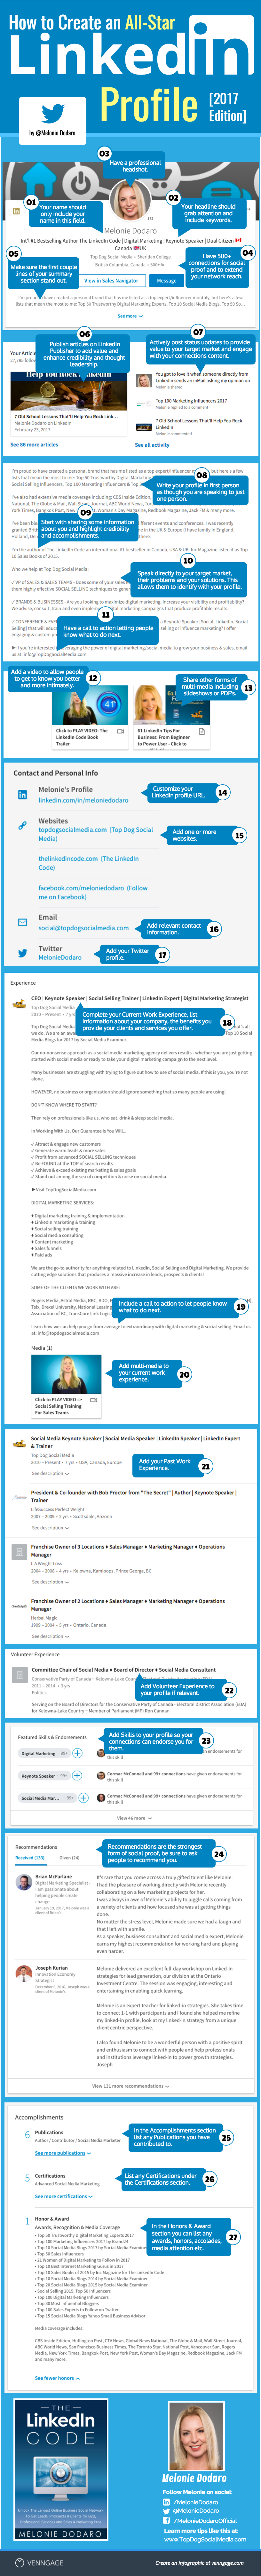 How to Create an All-Star LinkedIn Profile #Infographic